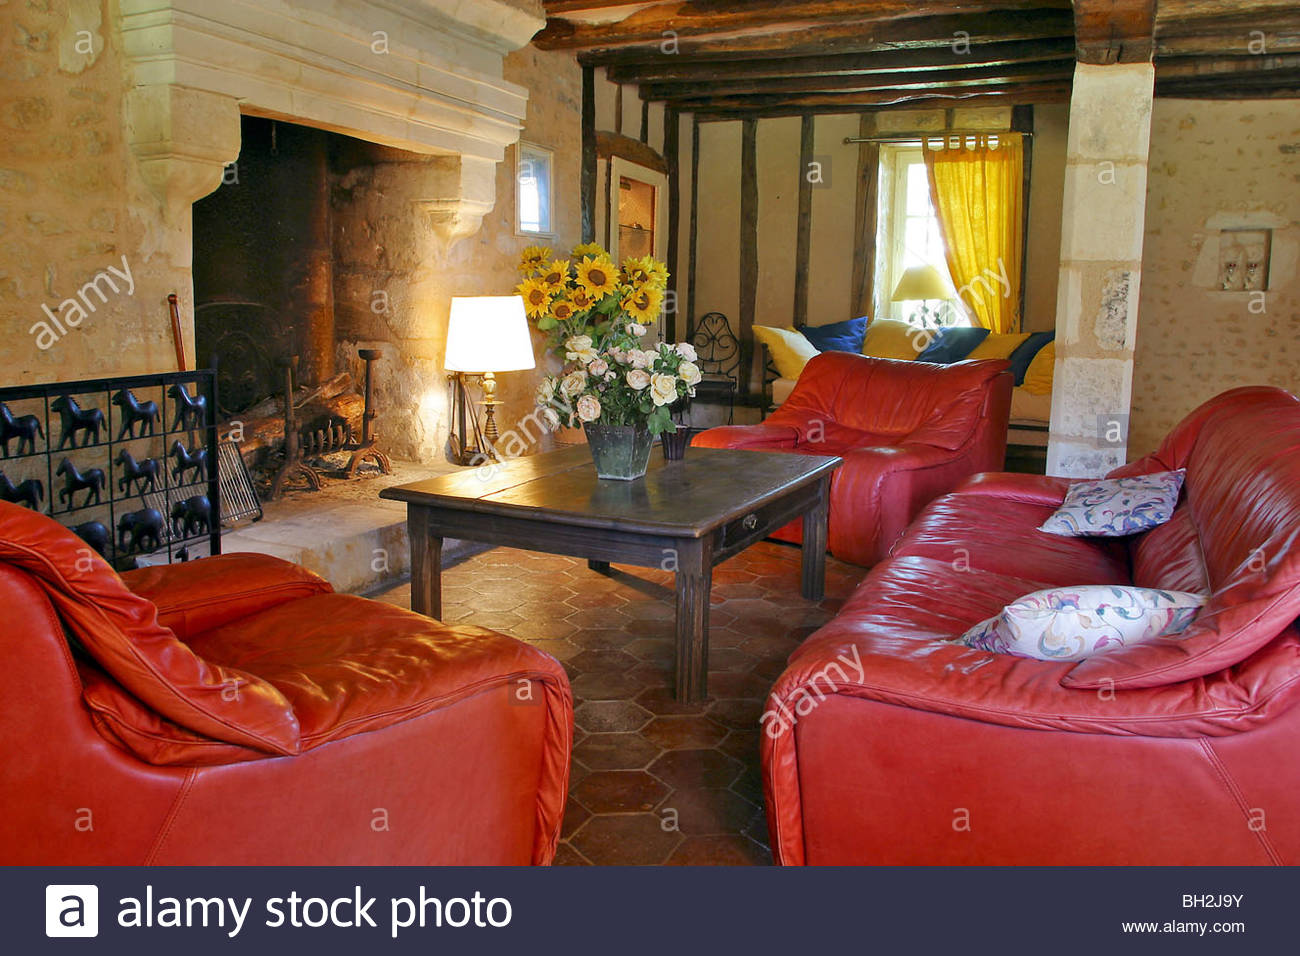 Coudray Stock Photos & Coudray Stock Images - Alamy